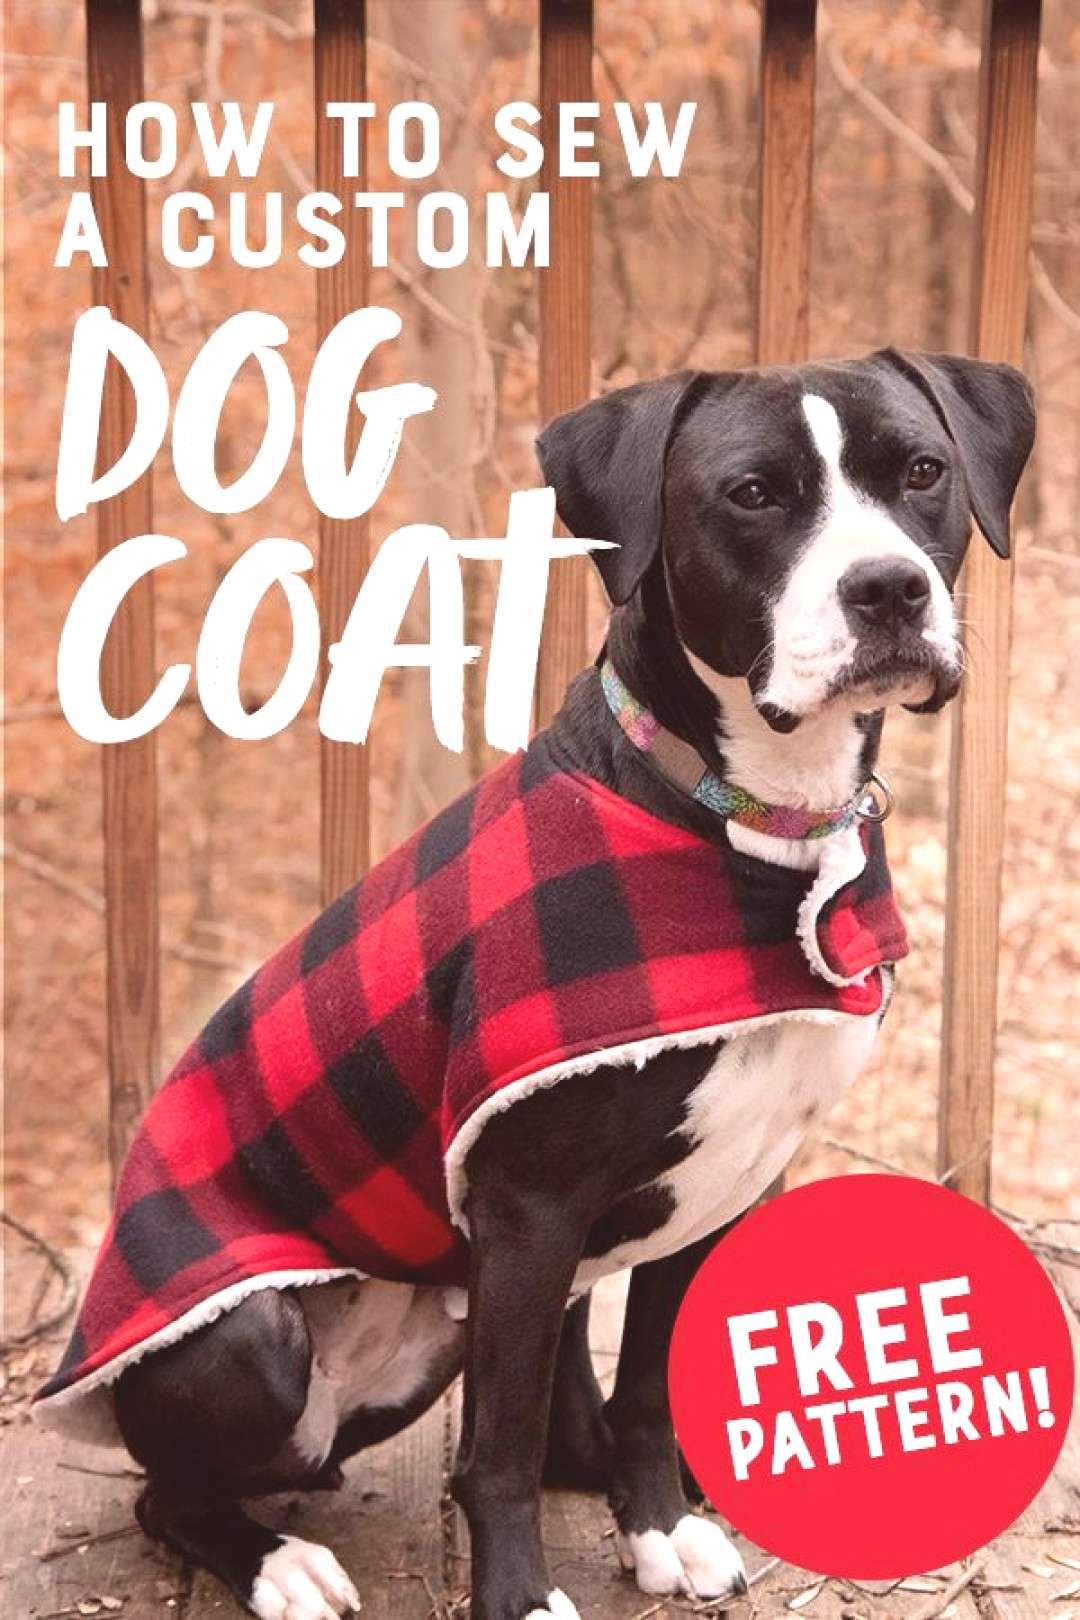 How to Sew a Cozy Custom Dog Coat in Less than an Hour This cozy custom dog coat is a super easy be